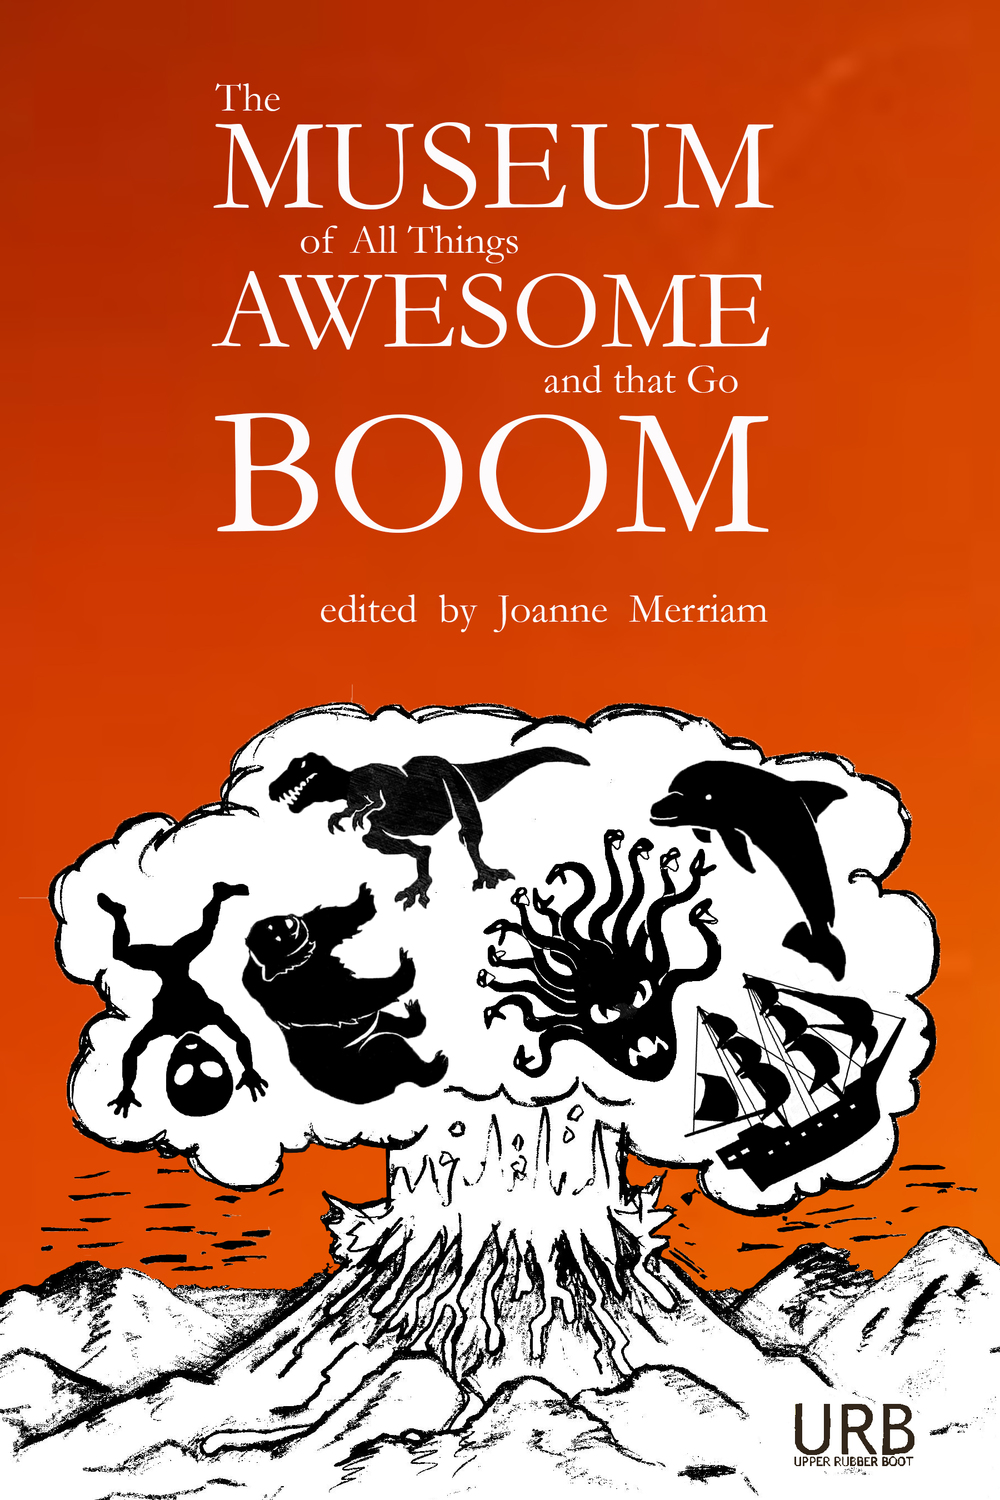 The Museum of All Things Awesome and That Go Boom, Edited by Joanne Merriam YEAR: 2016 PUBLISHER: Upper Rubber Boot Books AVAILABLE FROM: The Southeast Battlement Gift Shop Amazon Barnes & Noble